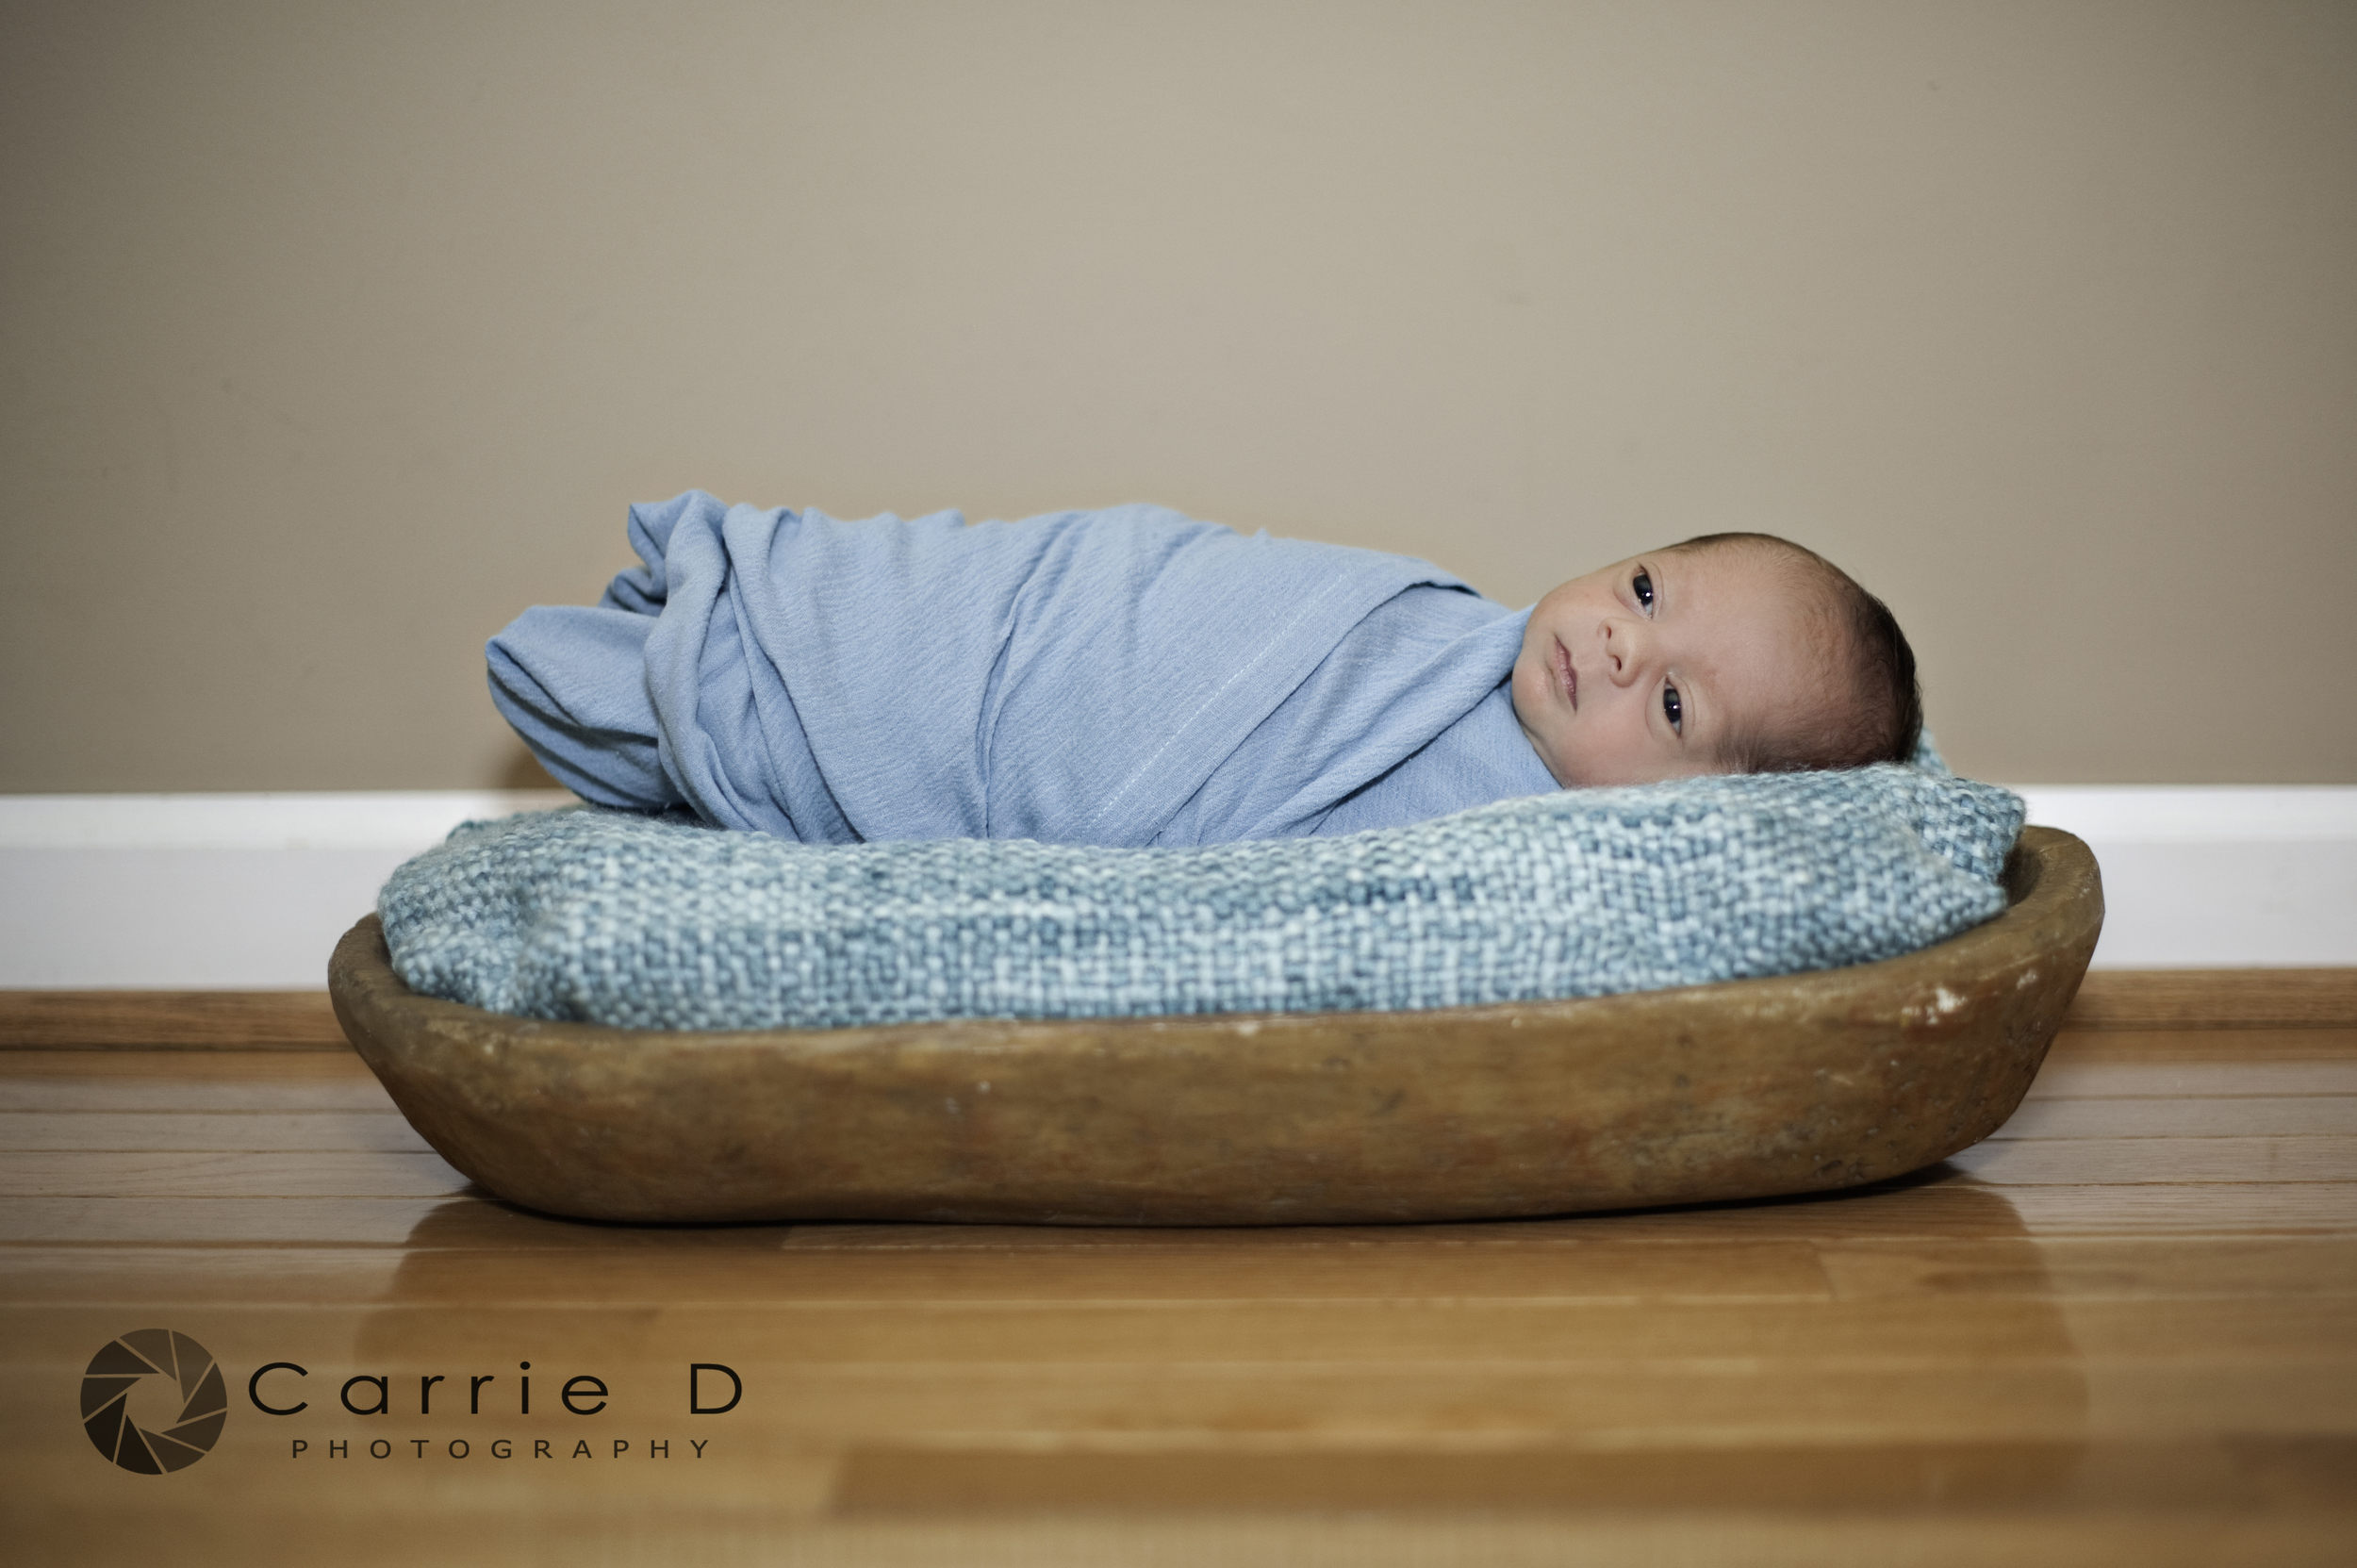 Baltimore Photographer – Baltimore Portrait Photographer – Baltimore Family Photographer - Baltimore Newborn Photographer – Baltimore Infant Photographer – Baltimore Sibling Photographer – Baltimore Natural Light Photographer – Baltimore Lifestyle Photographer – Baltimore Natural Light Portrait - Maryland Photographer – Maryland Portrait Photographer – Maryland Family Photographer - Maryland Newborn Photographer – Maryland Infant Photographer – Maryland Sibling Photographer – Maryland Natural Light Photographer – Maryland Lifestyle Photographer – Maryland Natural Light Portrait